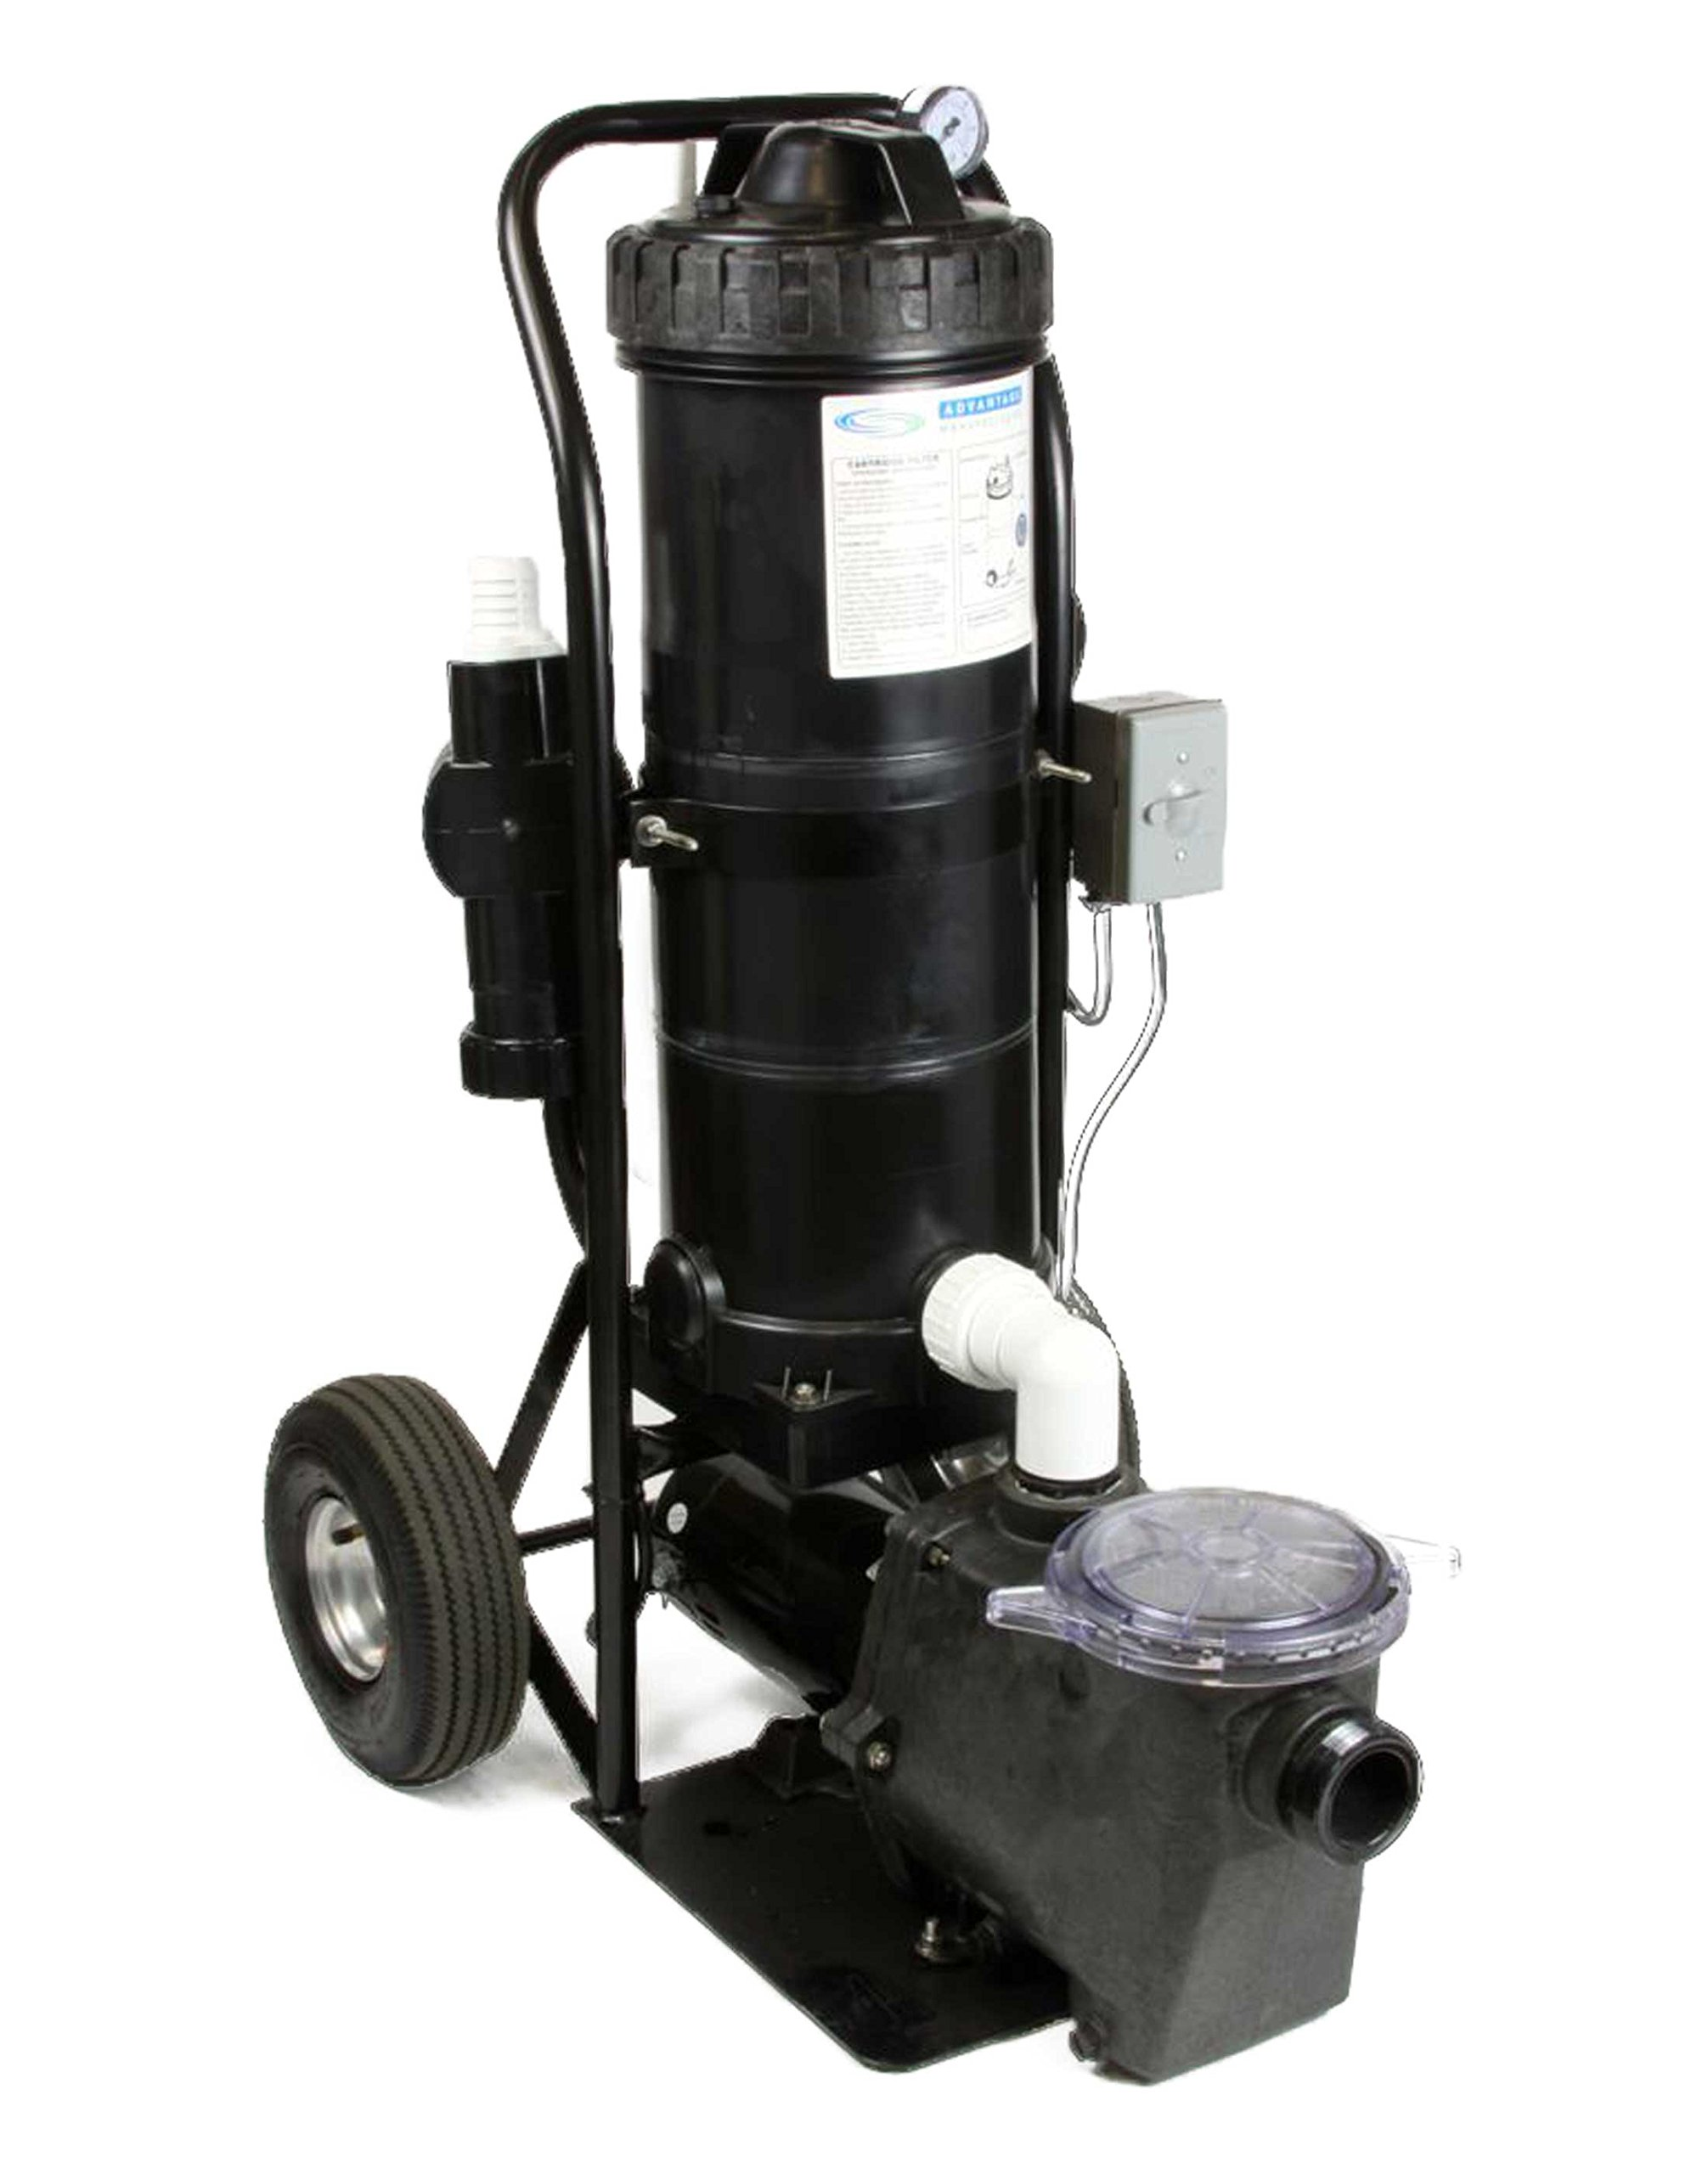 Mini Vac II 1 HP In Ground Pump Portable Vacuum System 80 GPM Mounted on a Small Cart by Advantage Manufacturing, Inc.